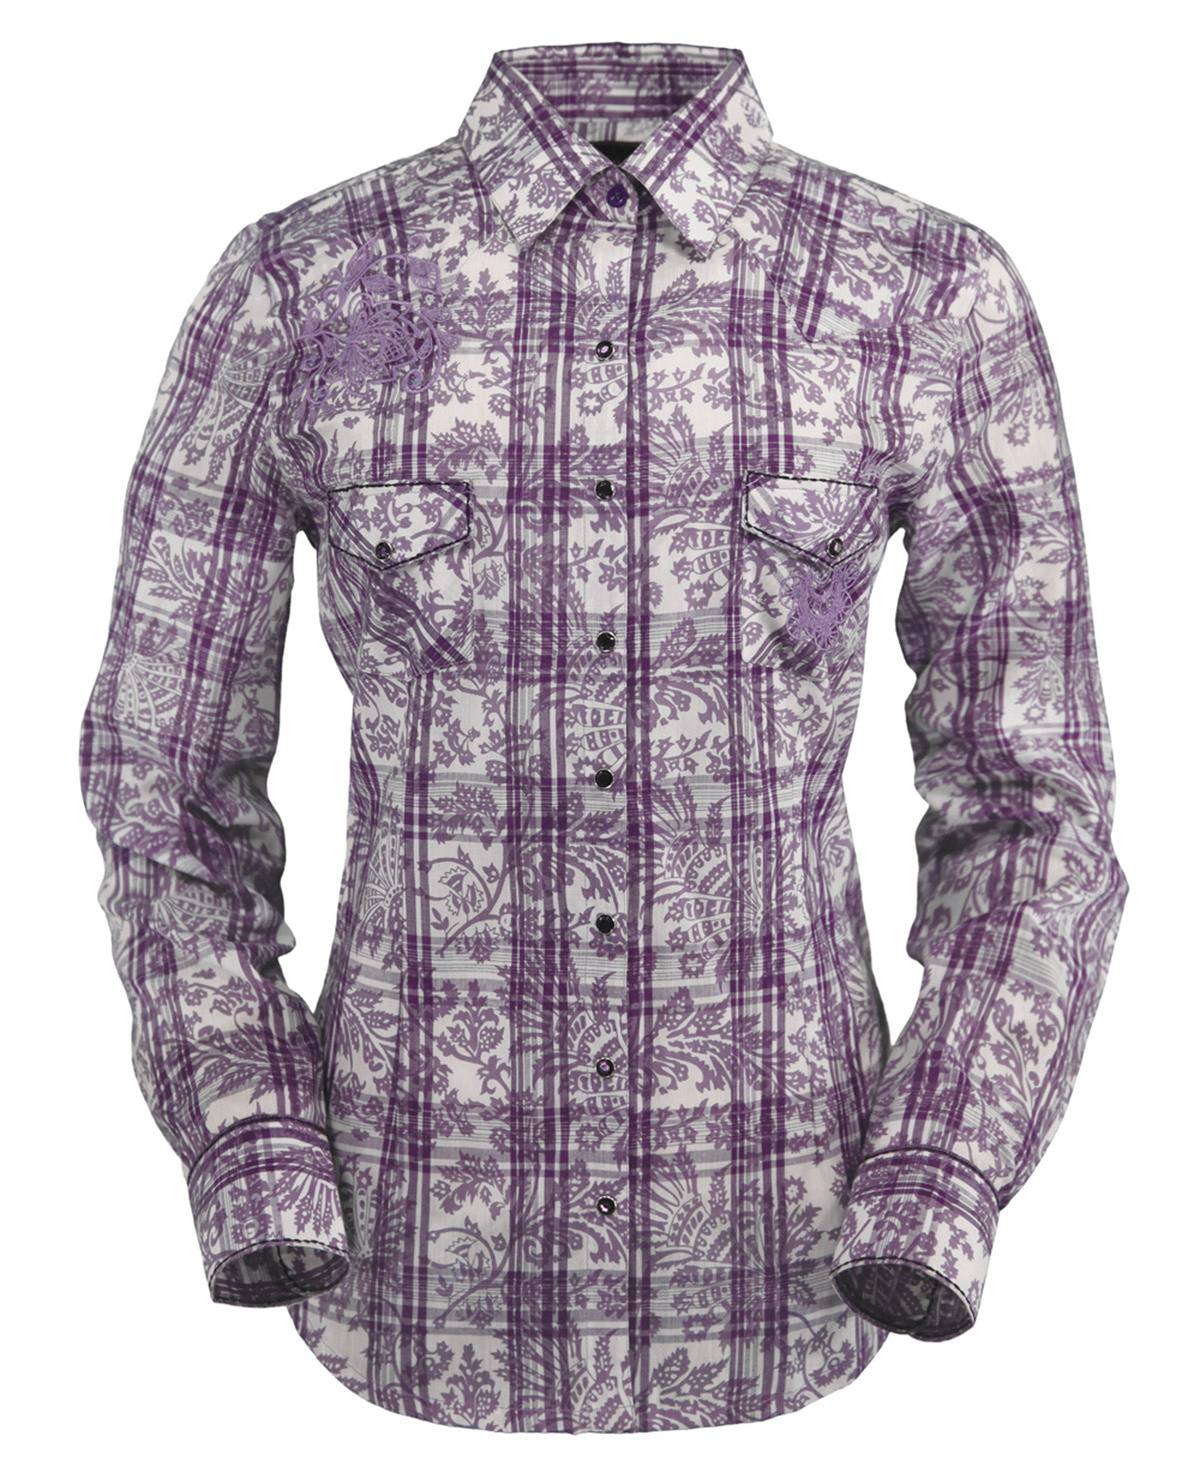 Outback Trading Lavender Shirt - Ladies